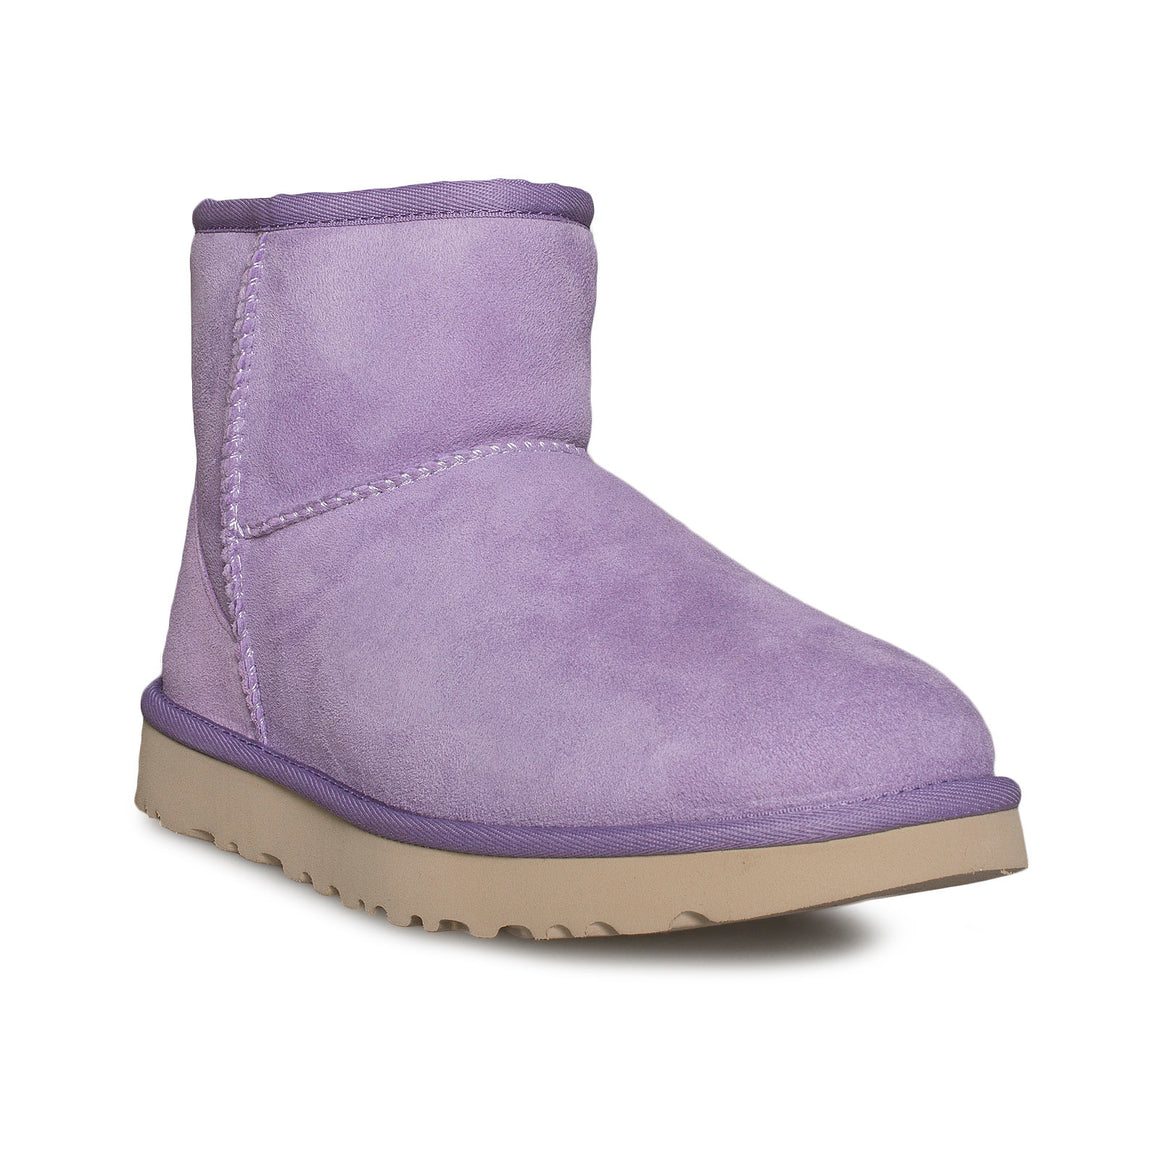 UGG Classic Mini II Purple Zen Boots - Women's